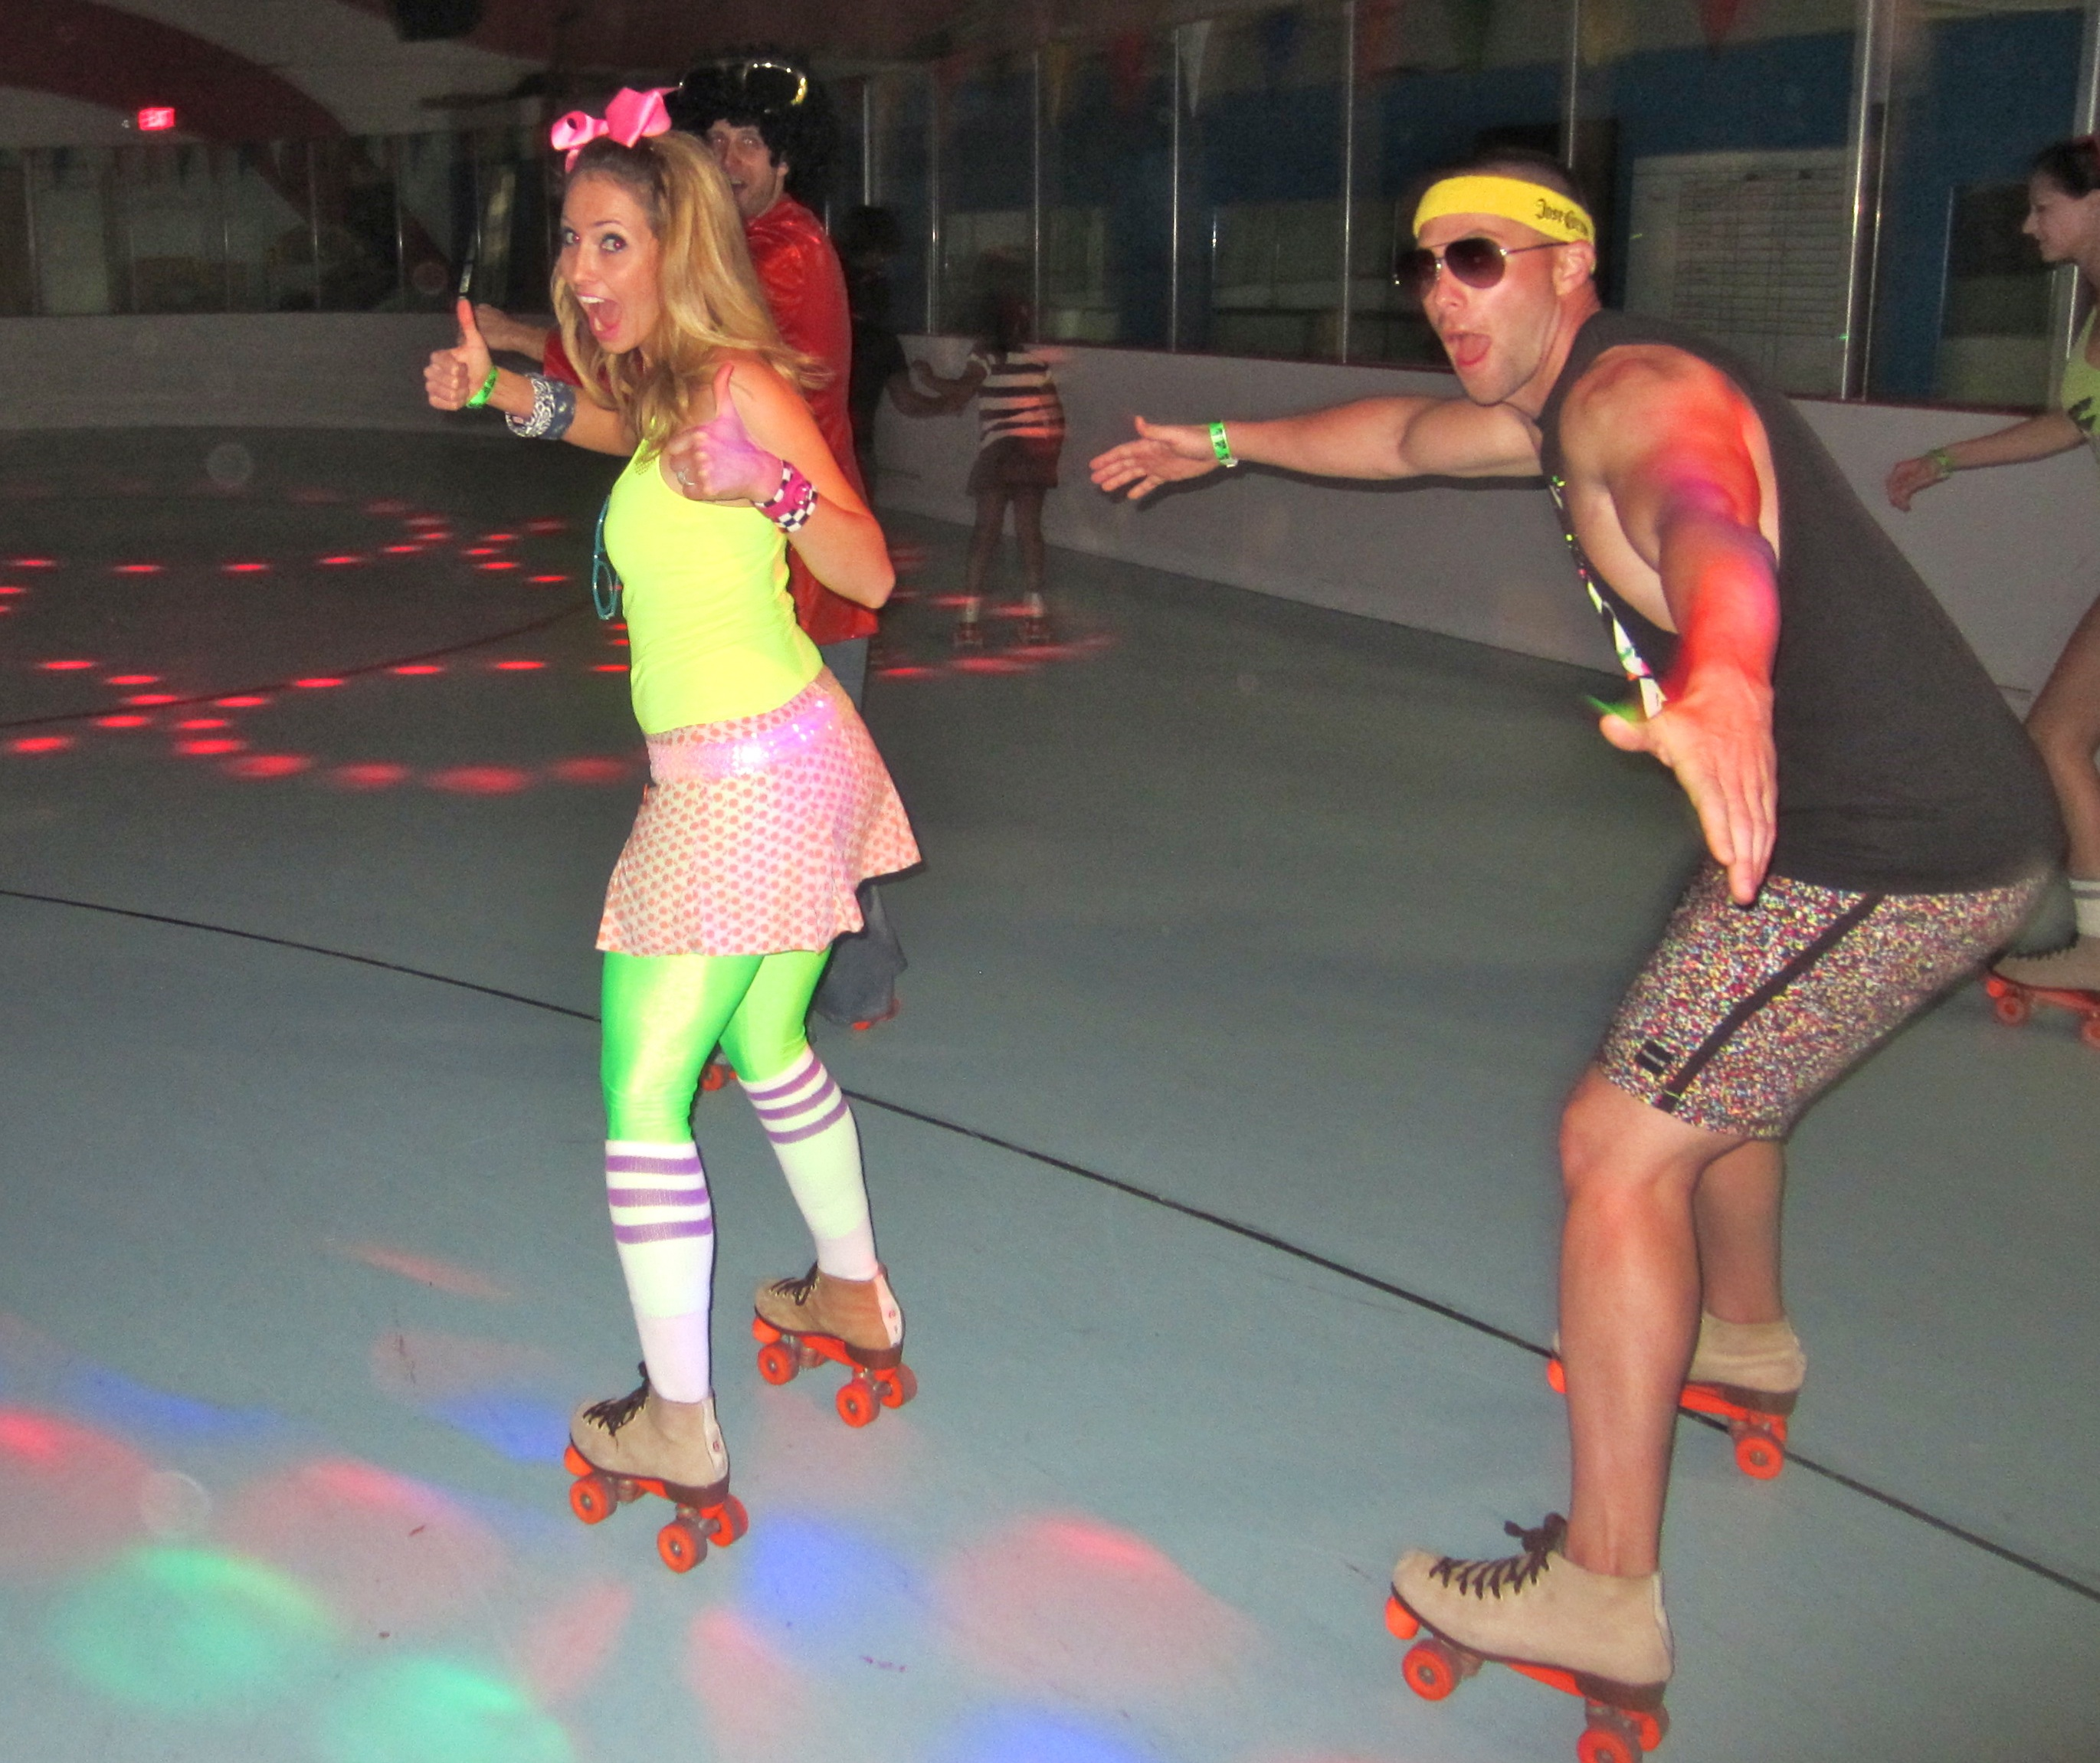 Adults roller skating in 80s gear